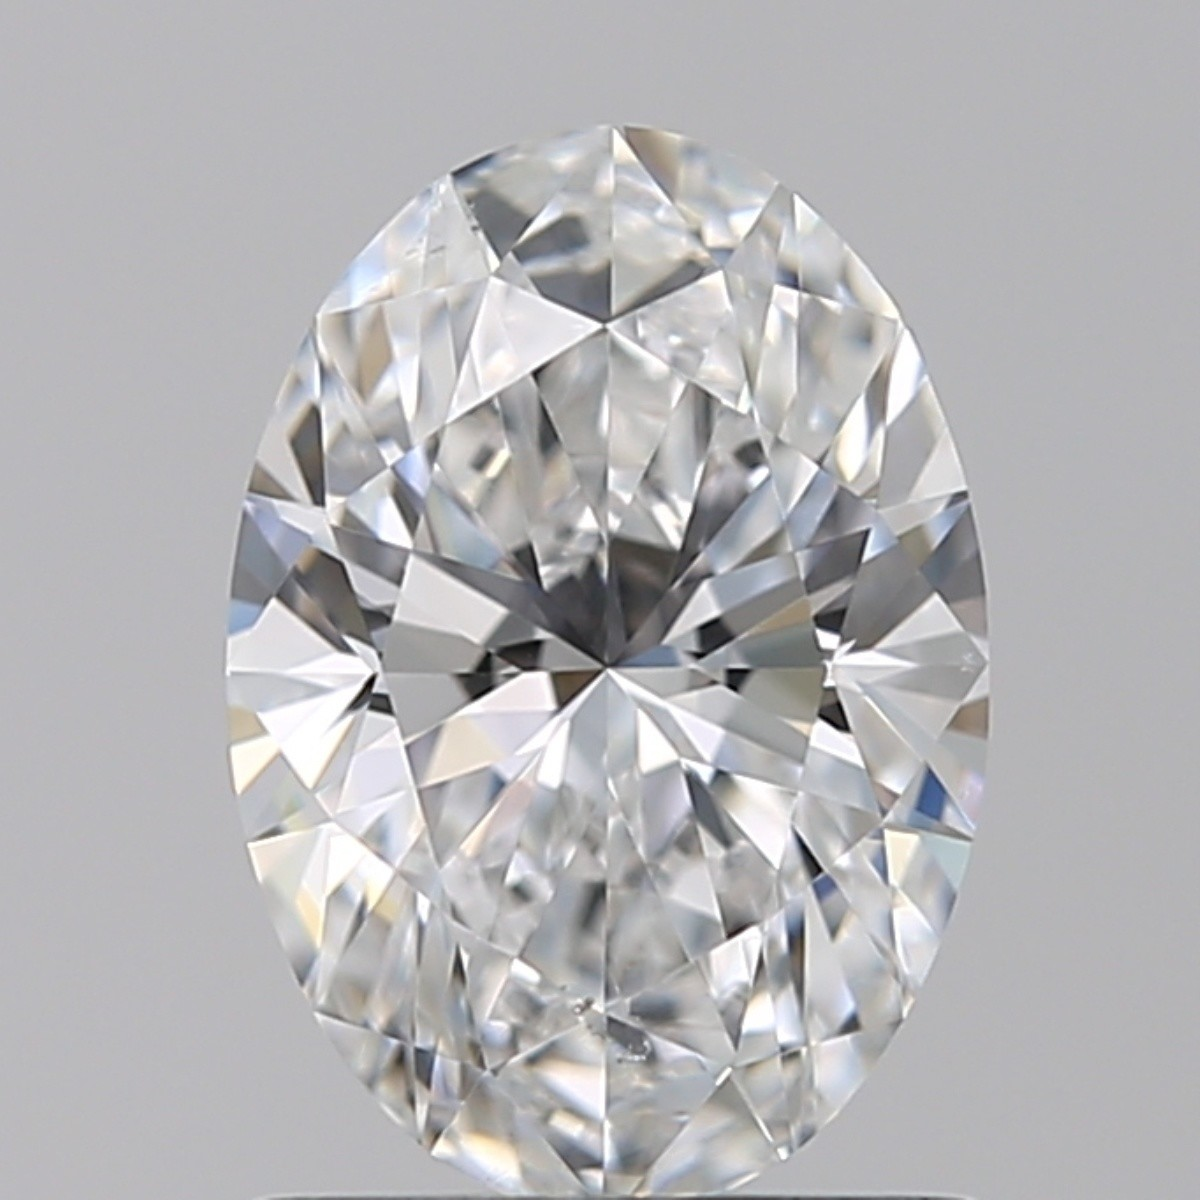 1.01 Carat Oval Diamond (E/VS2)